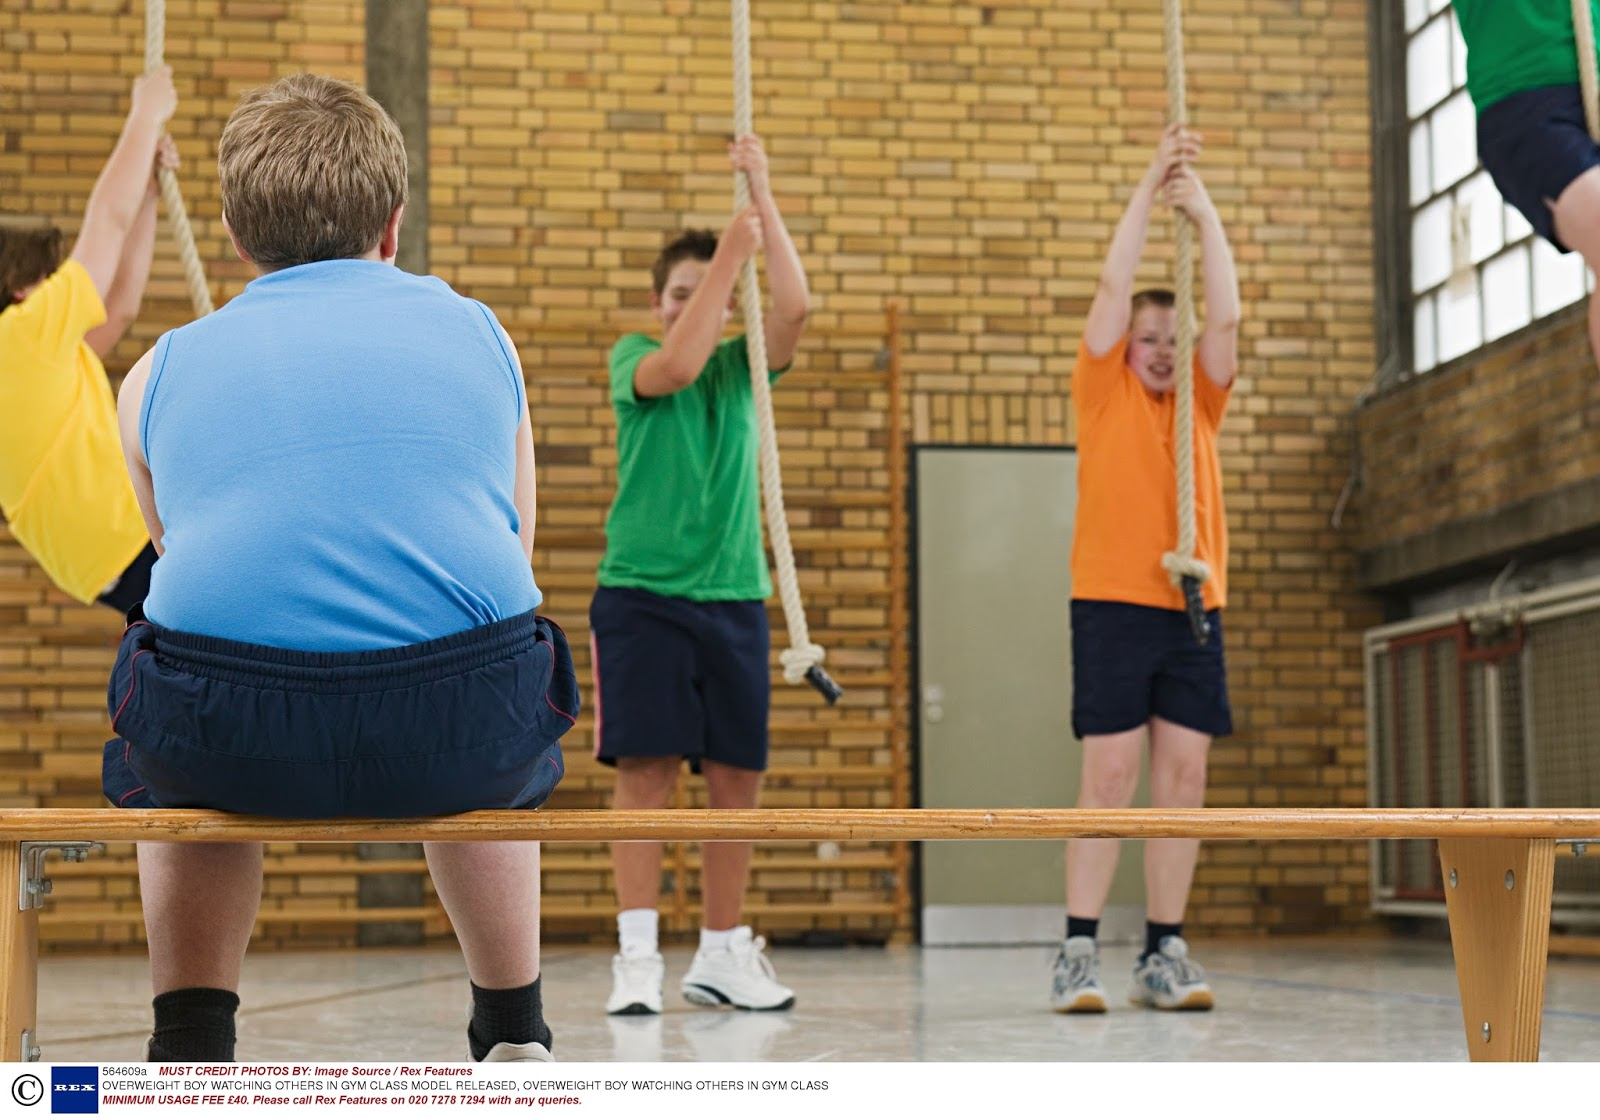 obesity on children 1 Childhood obesity and weight problems  myths and facts about weight problems and obesity in children myth 1: childhood obesity is genetic, so there's nothing you .